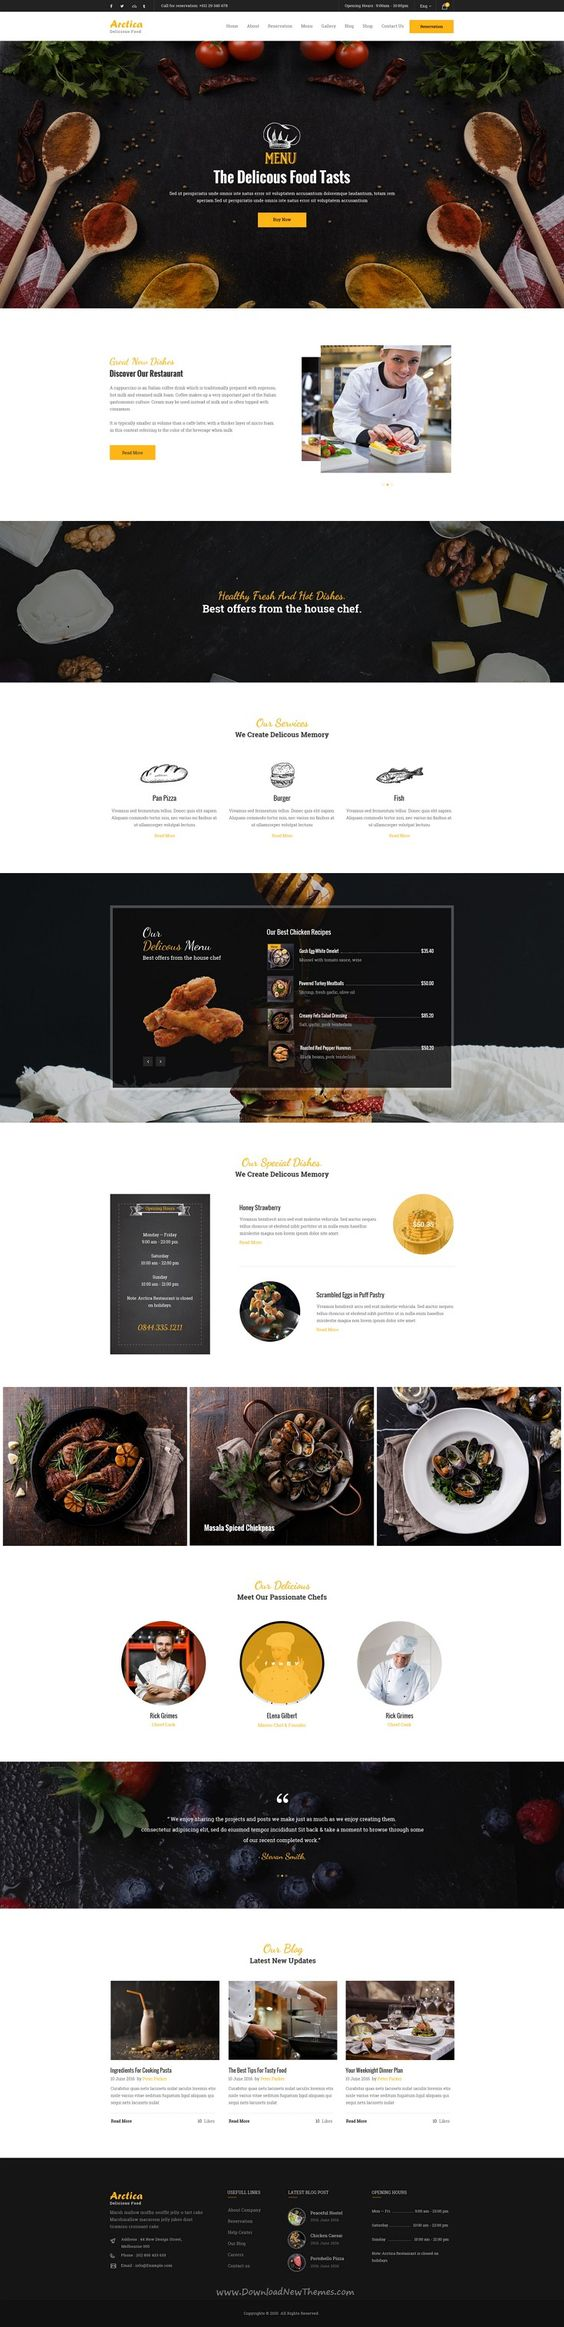 Artica is wonderful premium #PSD Template suitable for all types of #Restaurant business #website. Download Now!